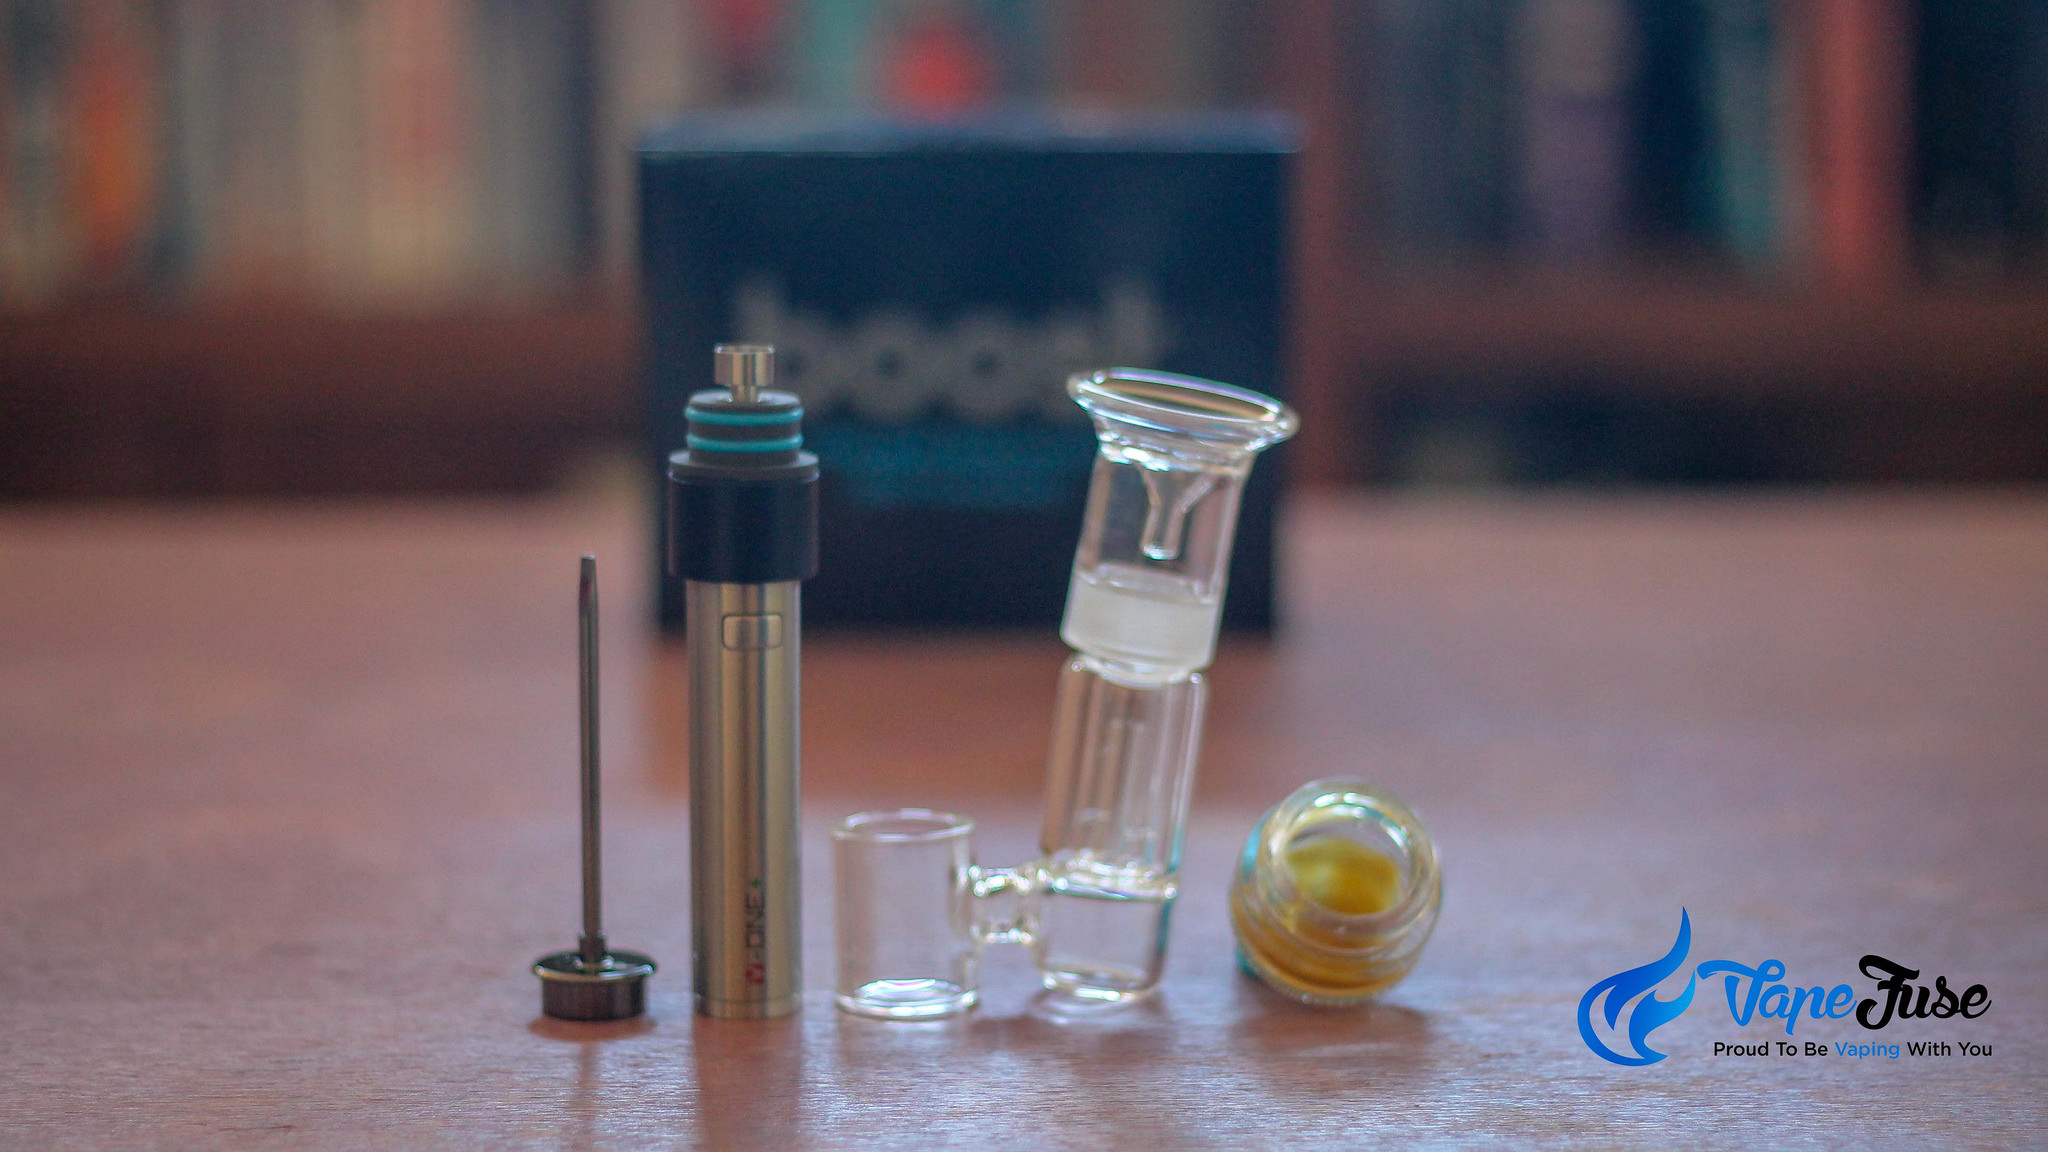 Turn Your Mod Vape into a Dab Rig: Concentrated Review |VapeFuse Blog